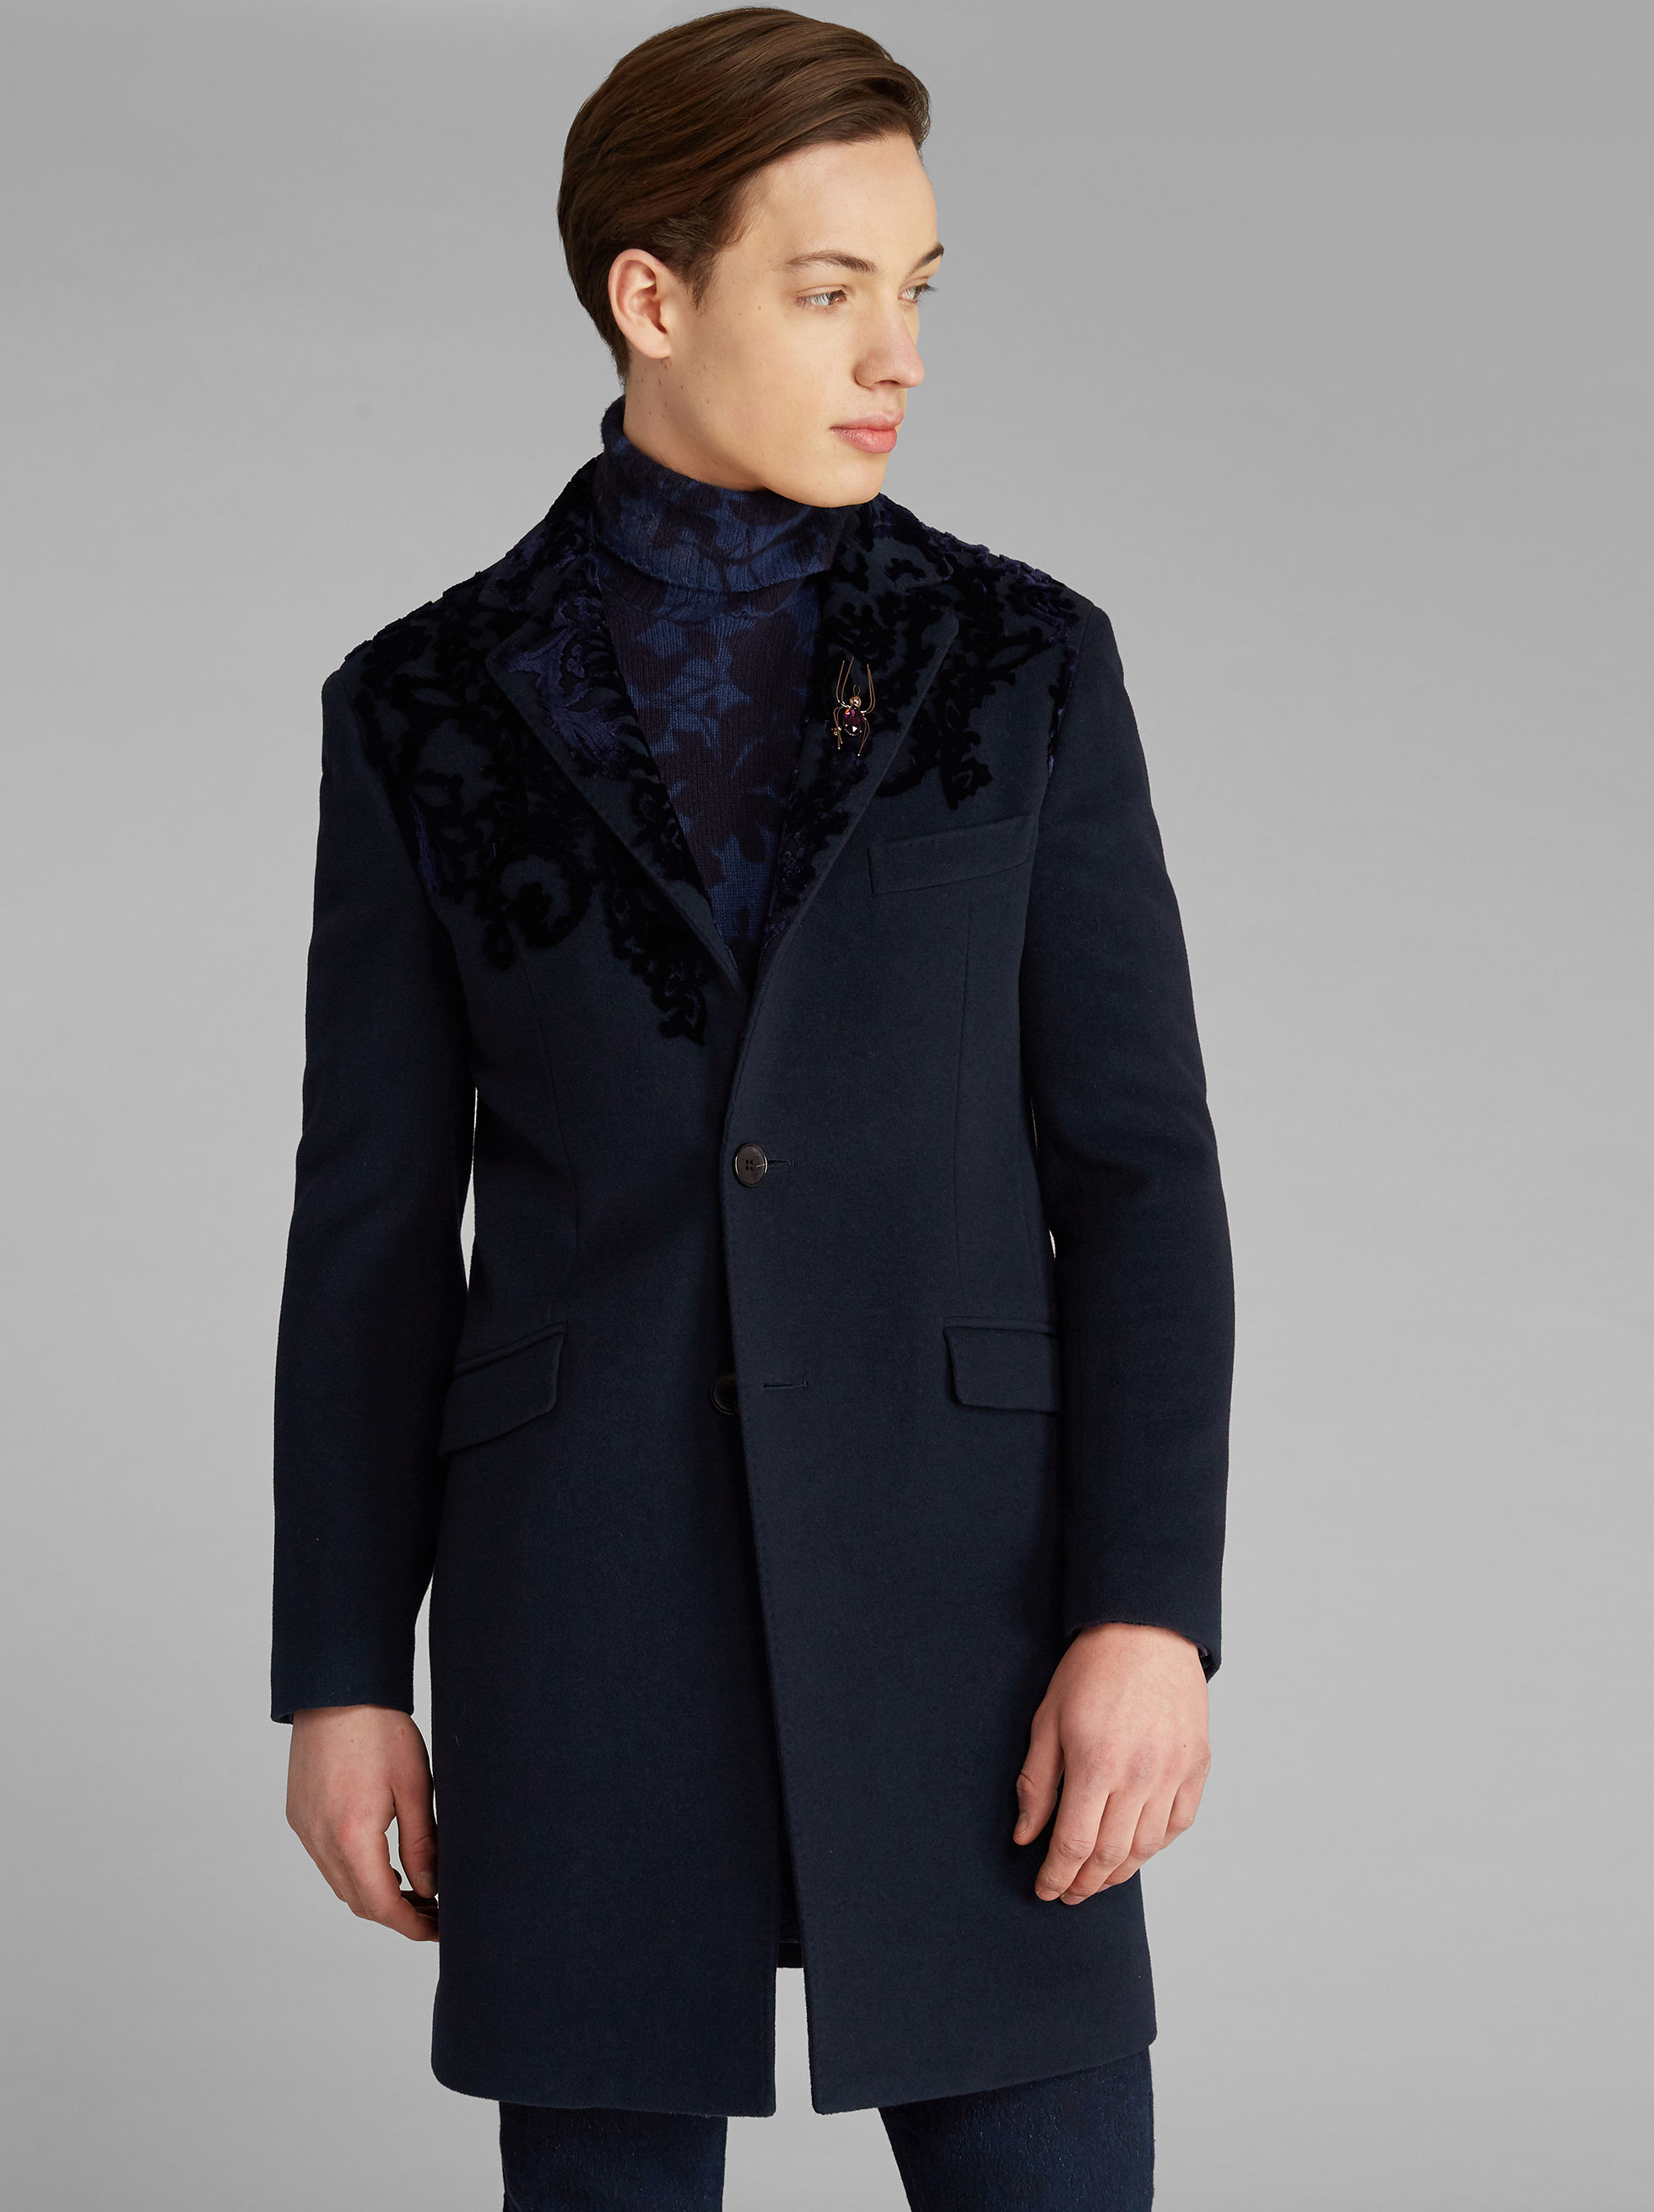 MANTEAU SEMI-TRADITIONNEL AVEC DÉTAILS EN VELOURS